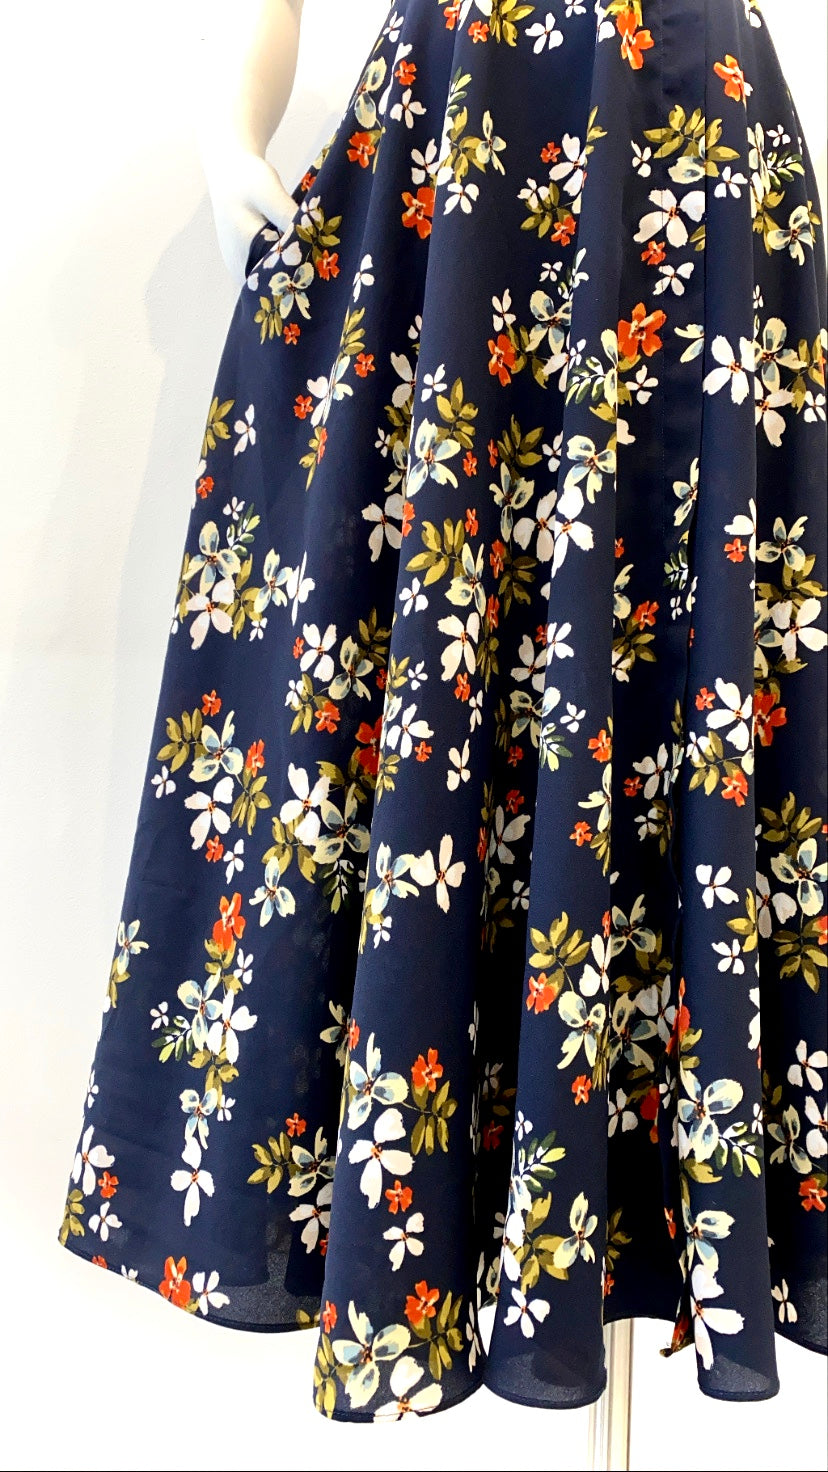 Jill Stuart - Navy Floral Printed Dress with Ruffled Neck and Belt